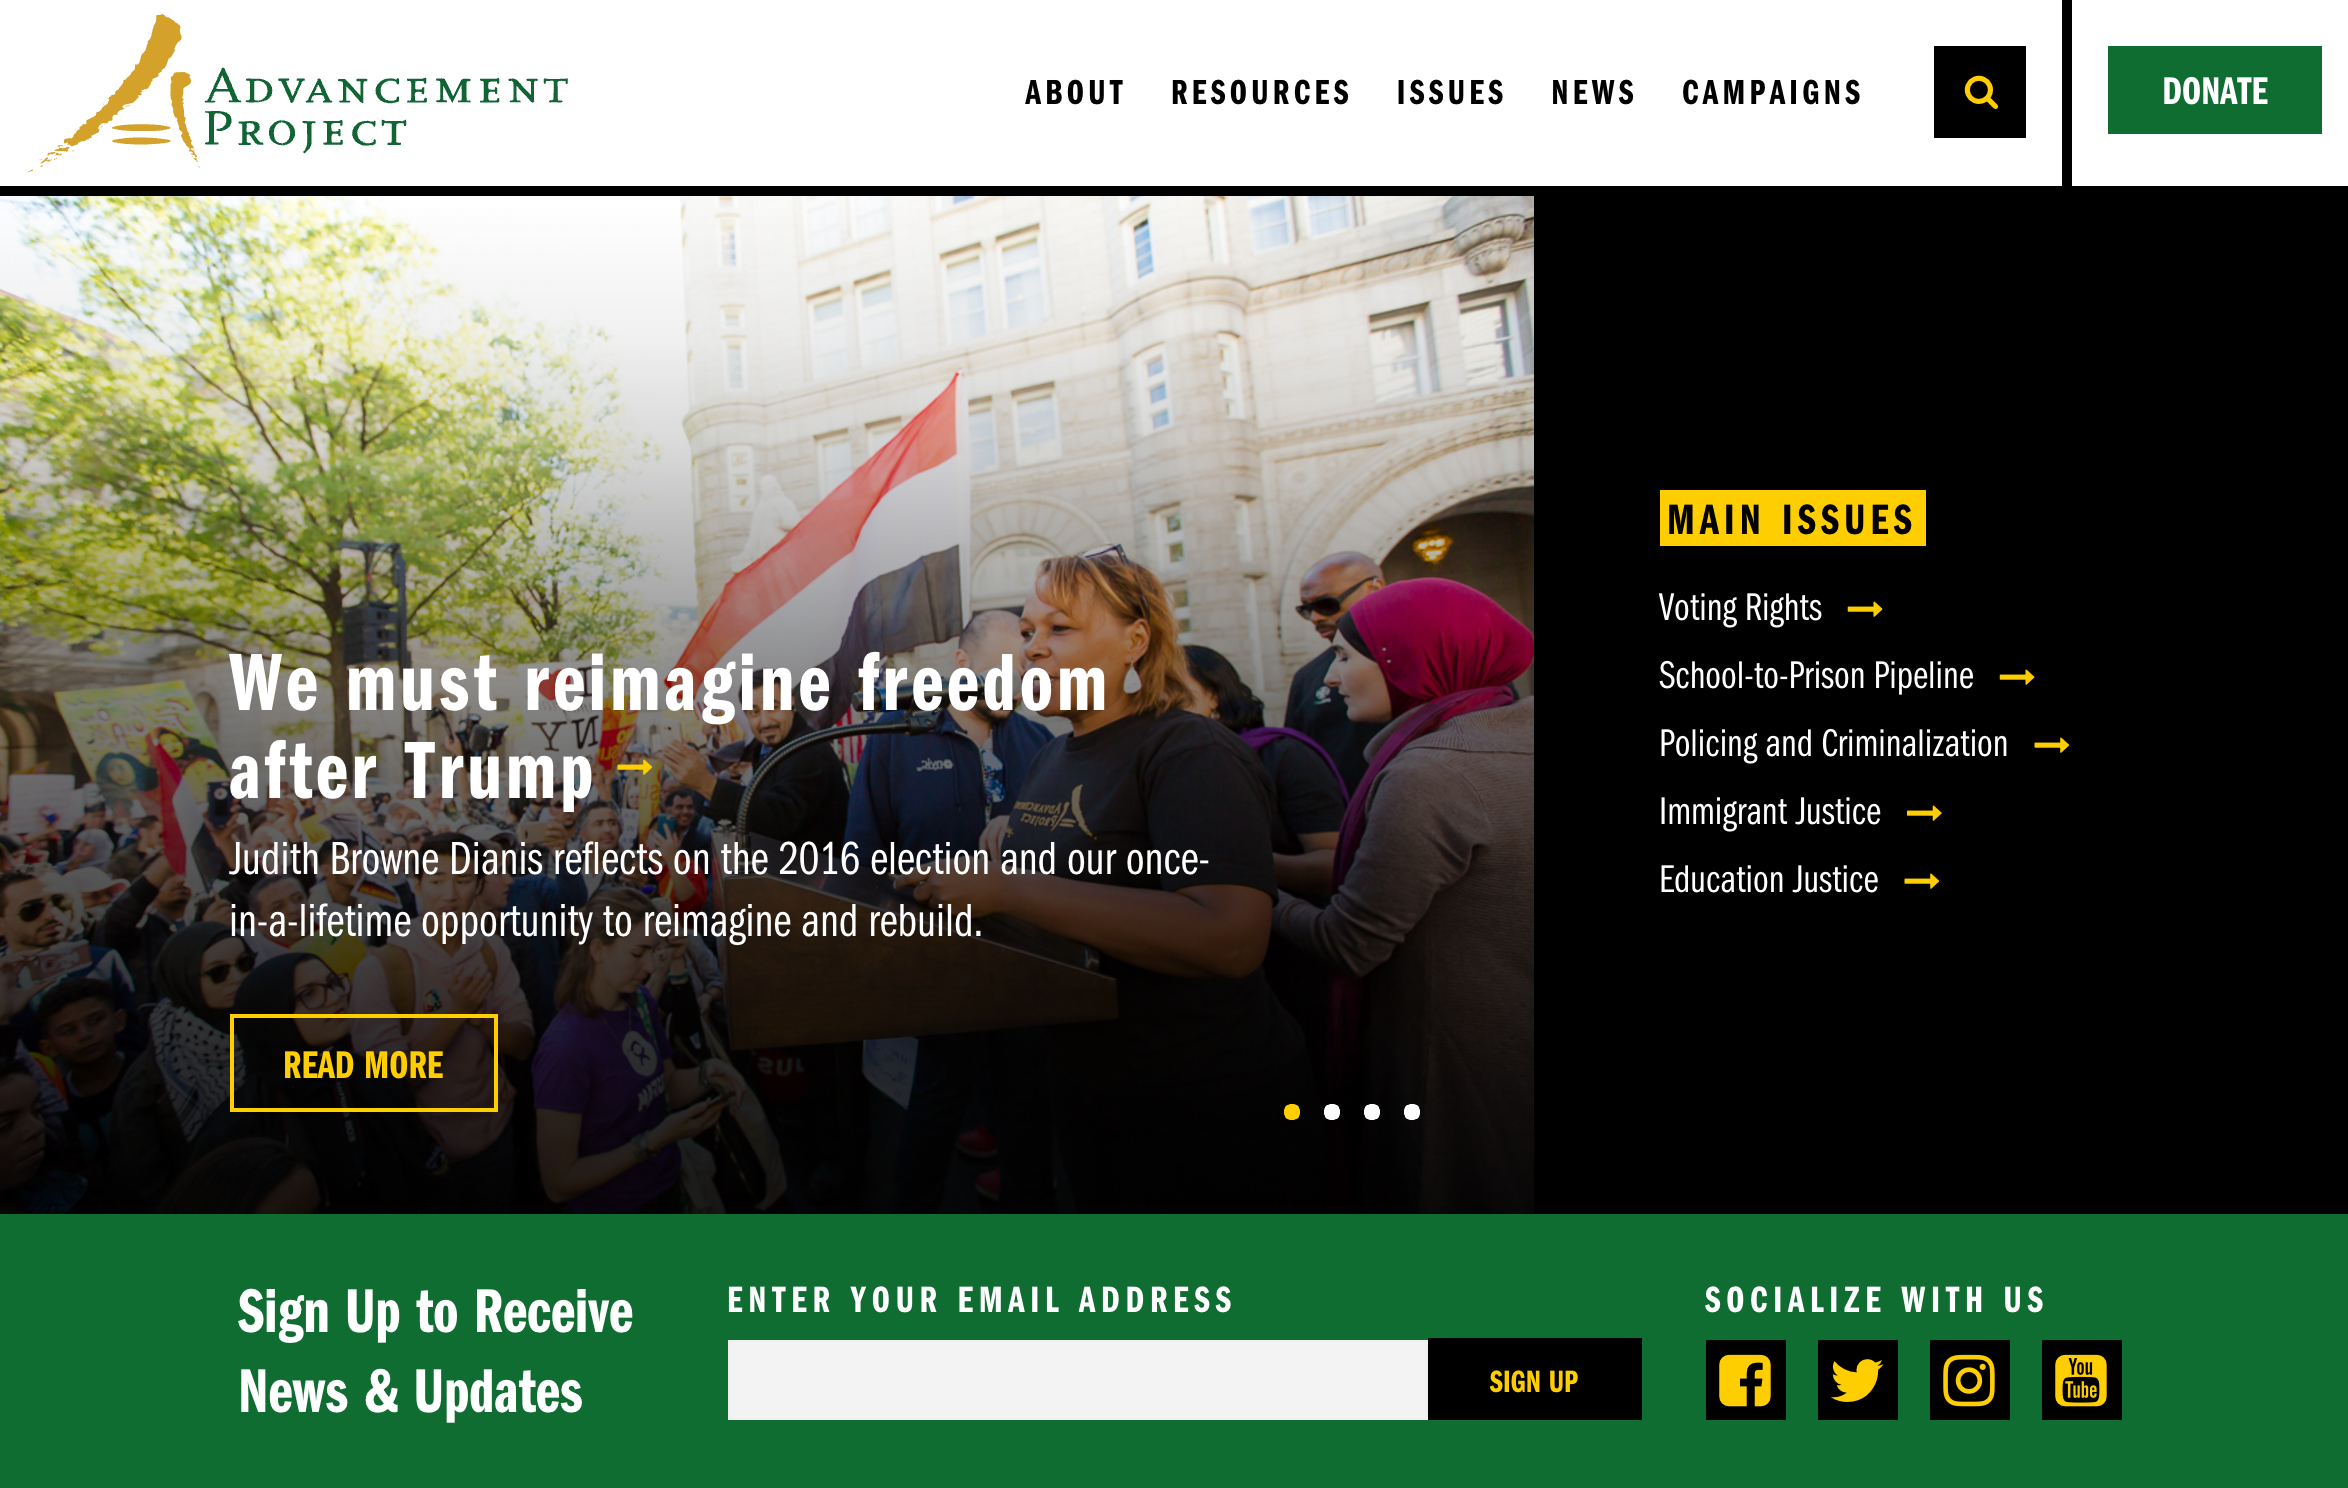 Advancement Project launches new website with improved racial justice tools